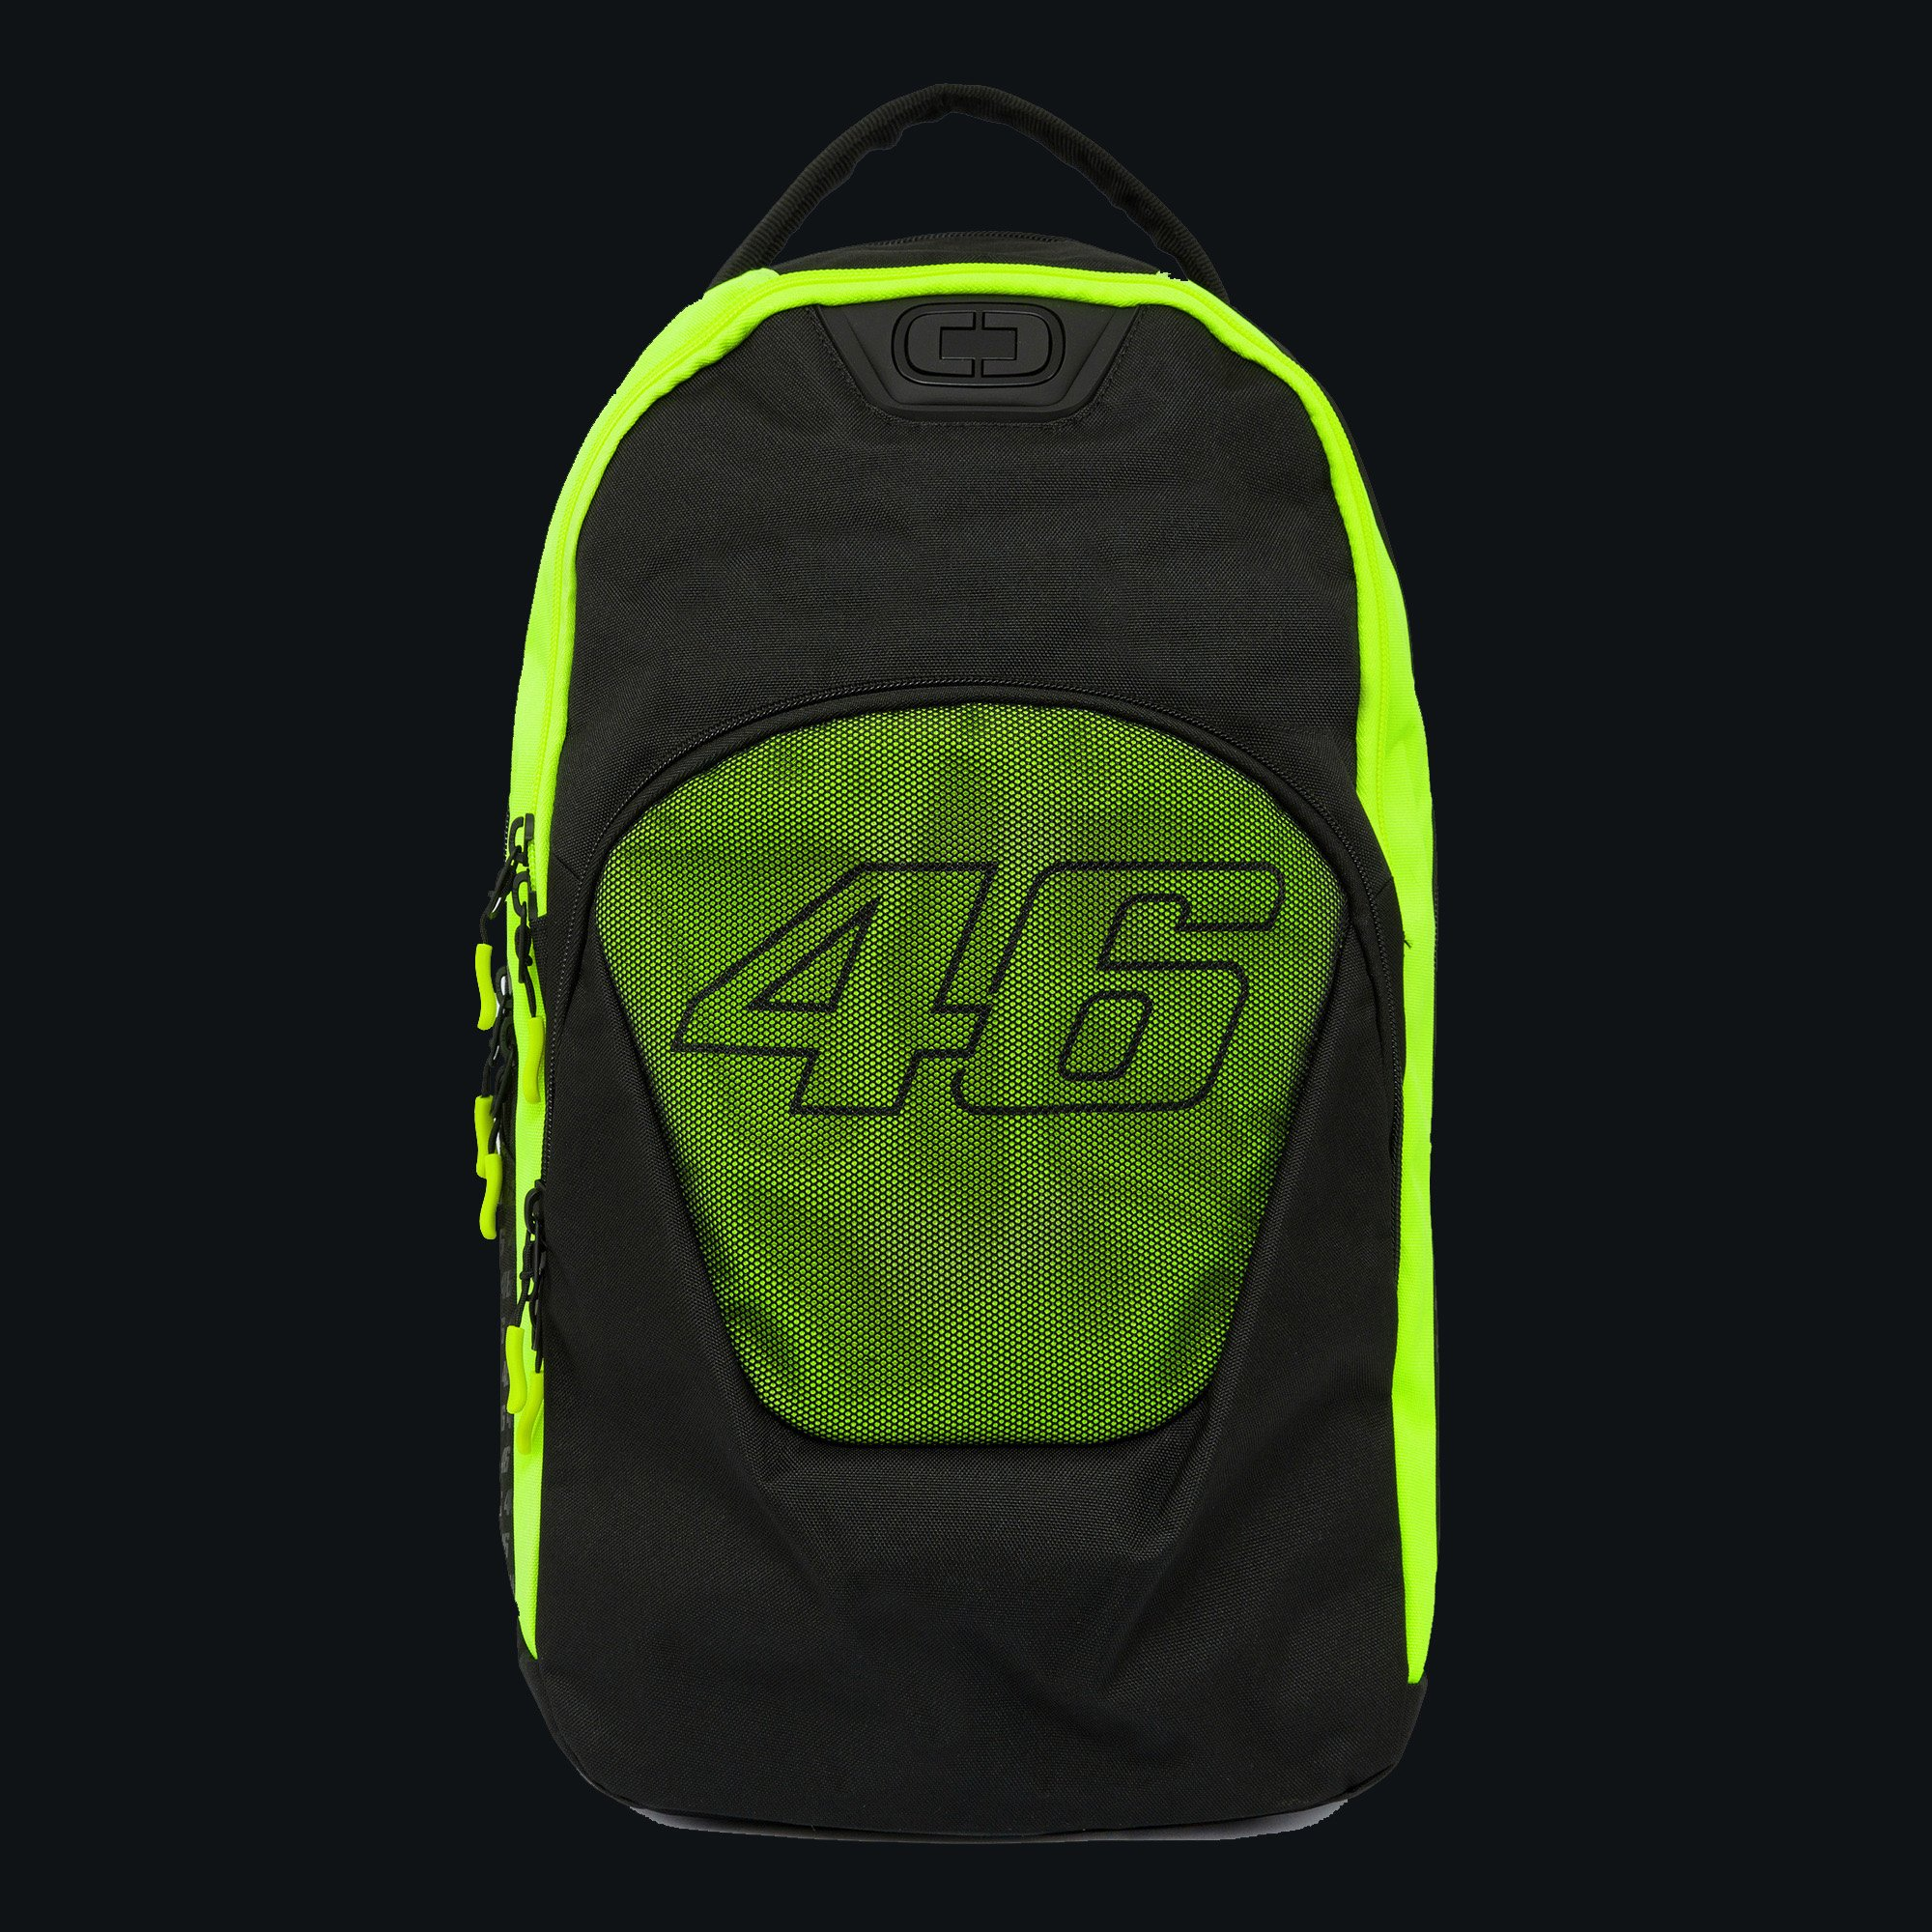 VR46 Outlaw LIMITED EDITION